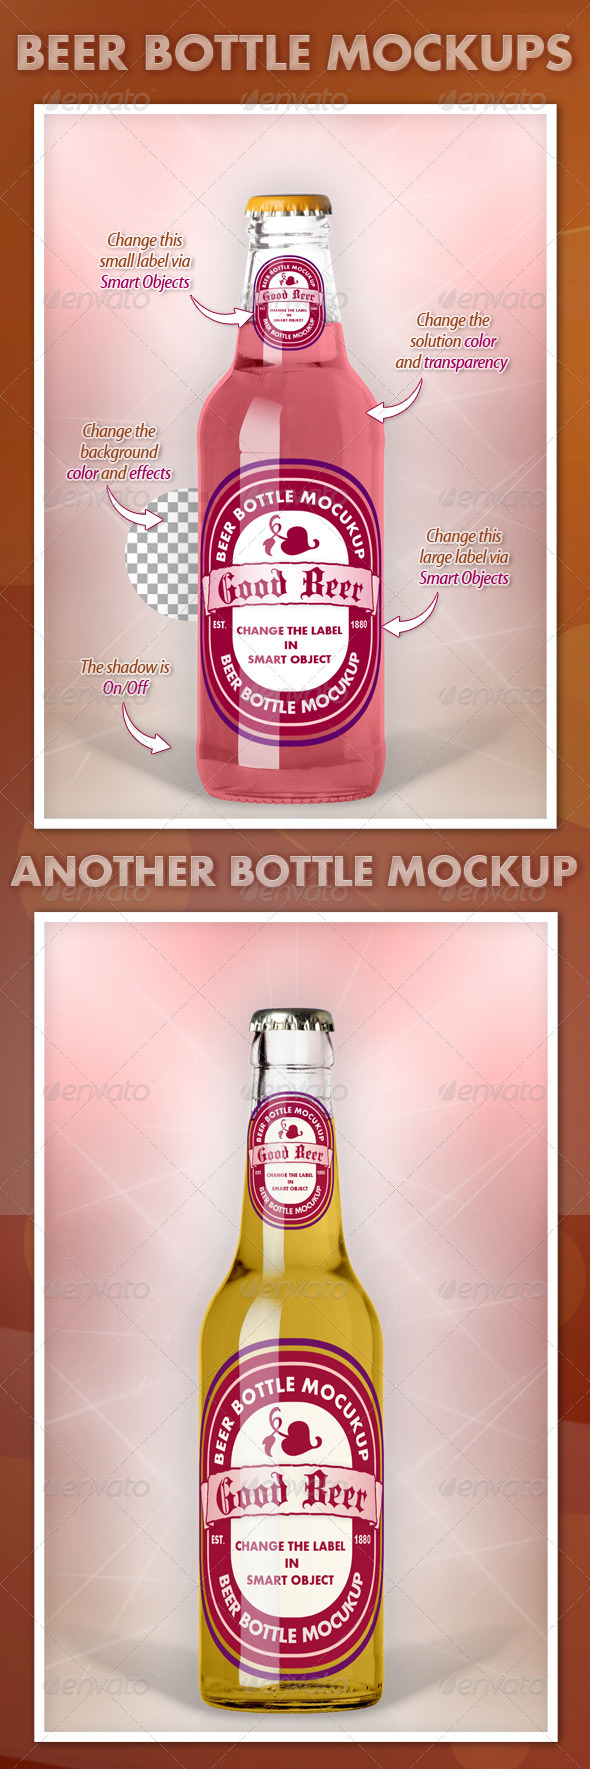 Beer Bottle Mockups V1.0 - Food and Drink Packaging